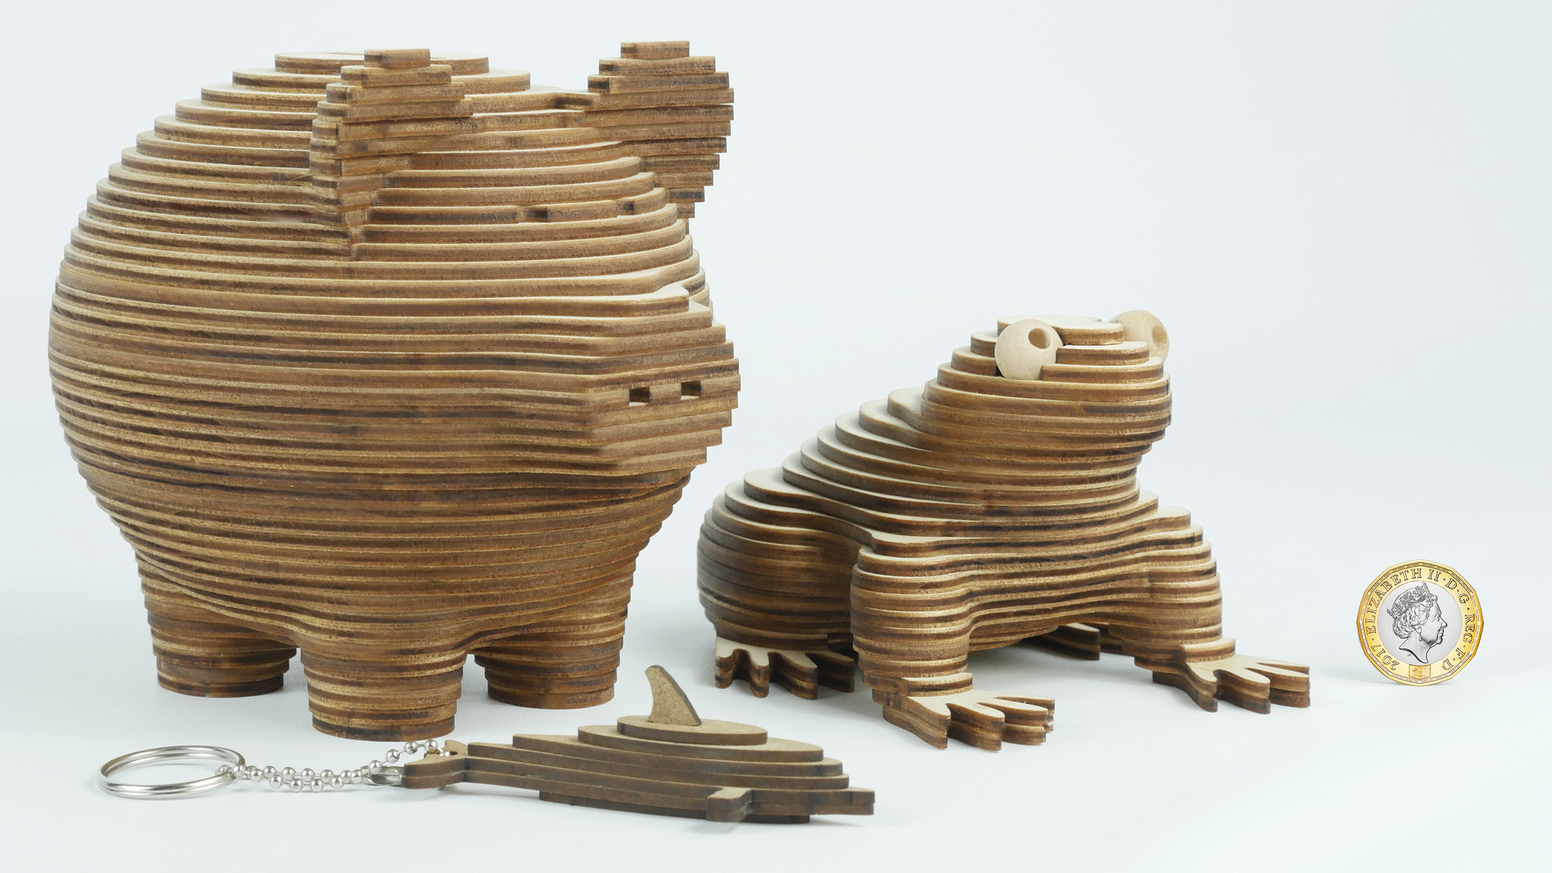 Stackamals are beautifully designed 3D animal model kits with hidden storage, built by stacking layers of laser cut birch plywood.